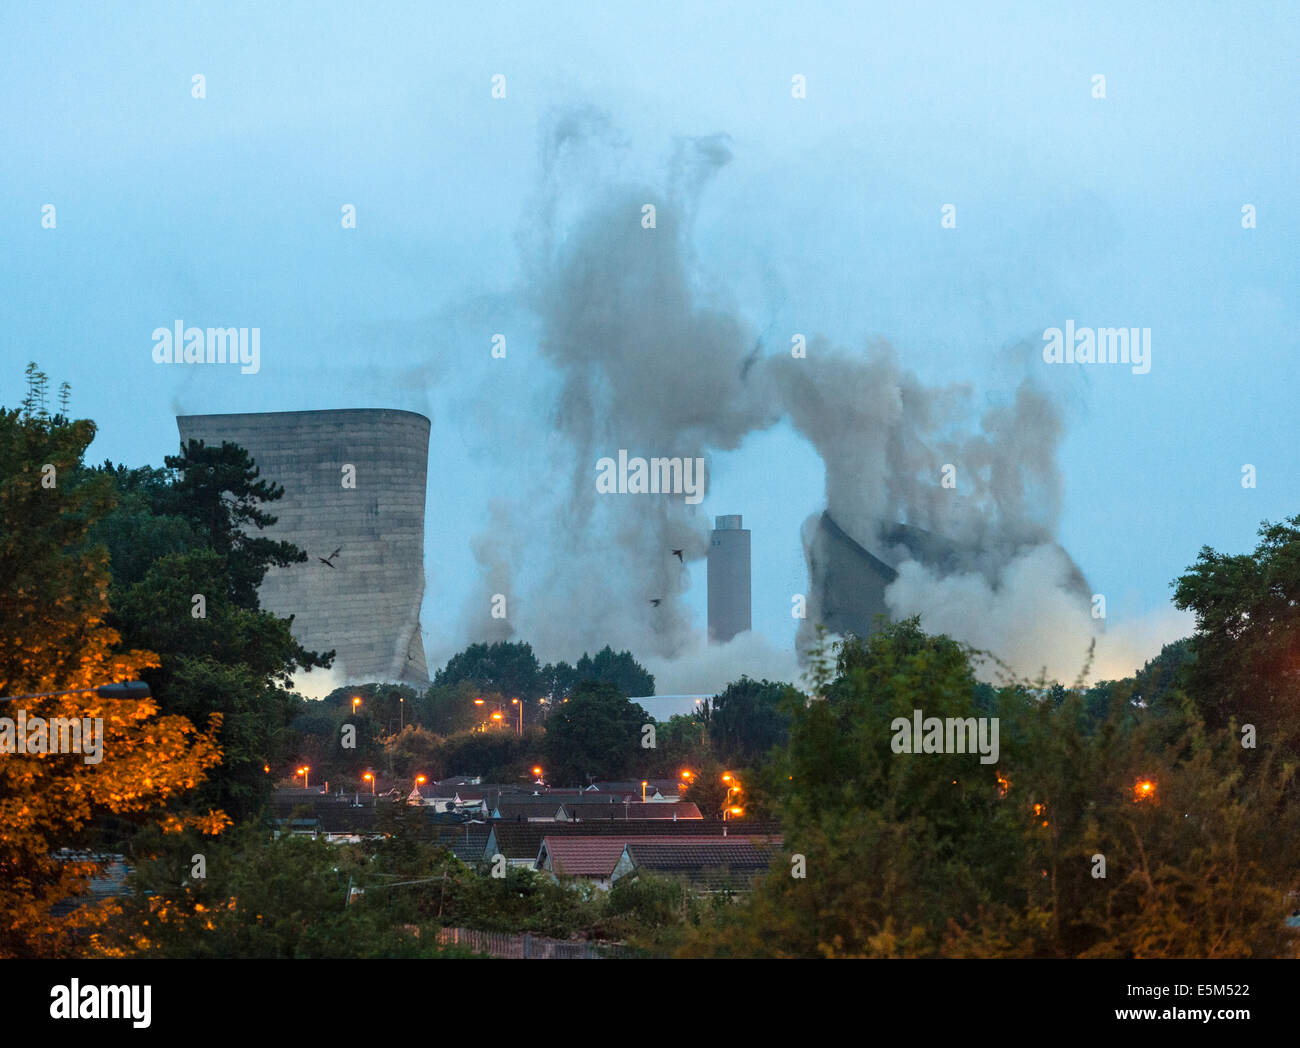 Didcot power station, Oxfordshire, UK. The demolition of the famous cooling towers on the morning of July 27, 2014 - Stock Image